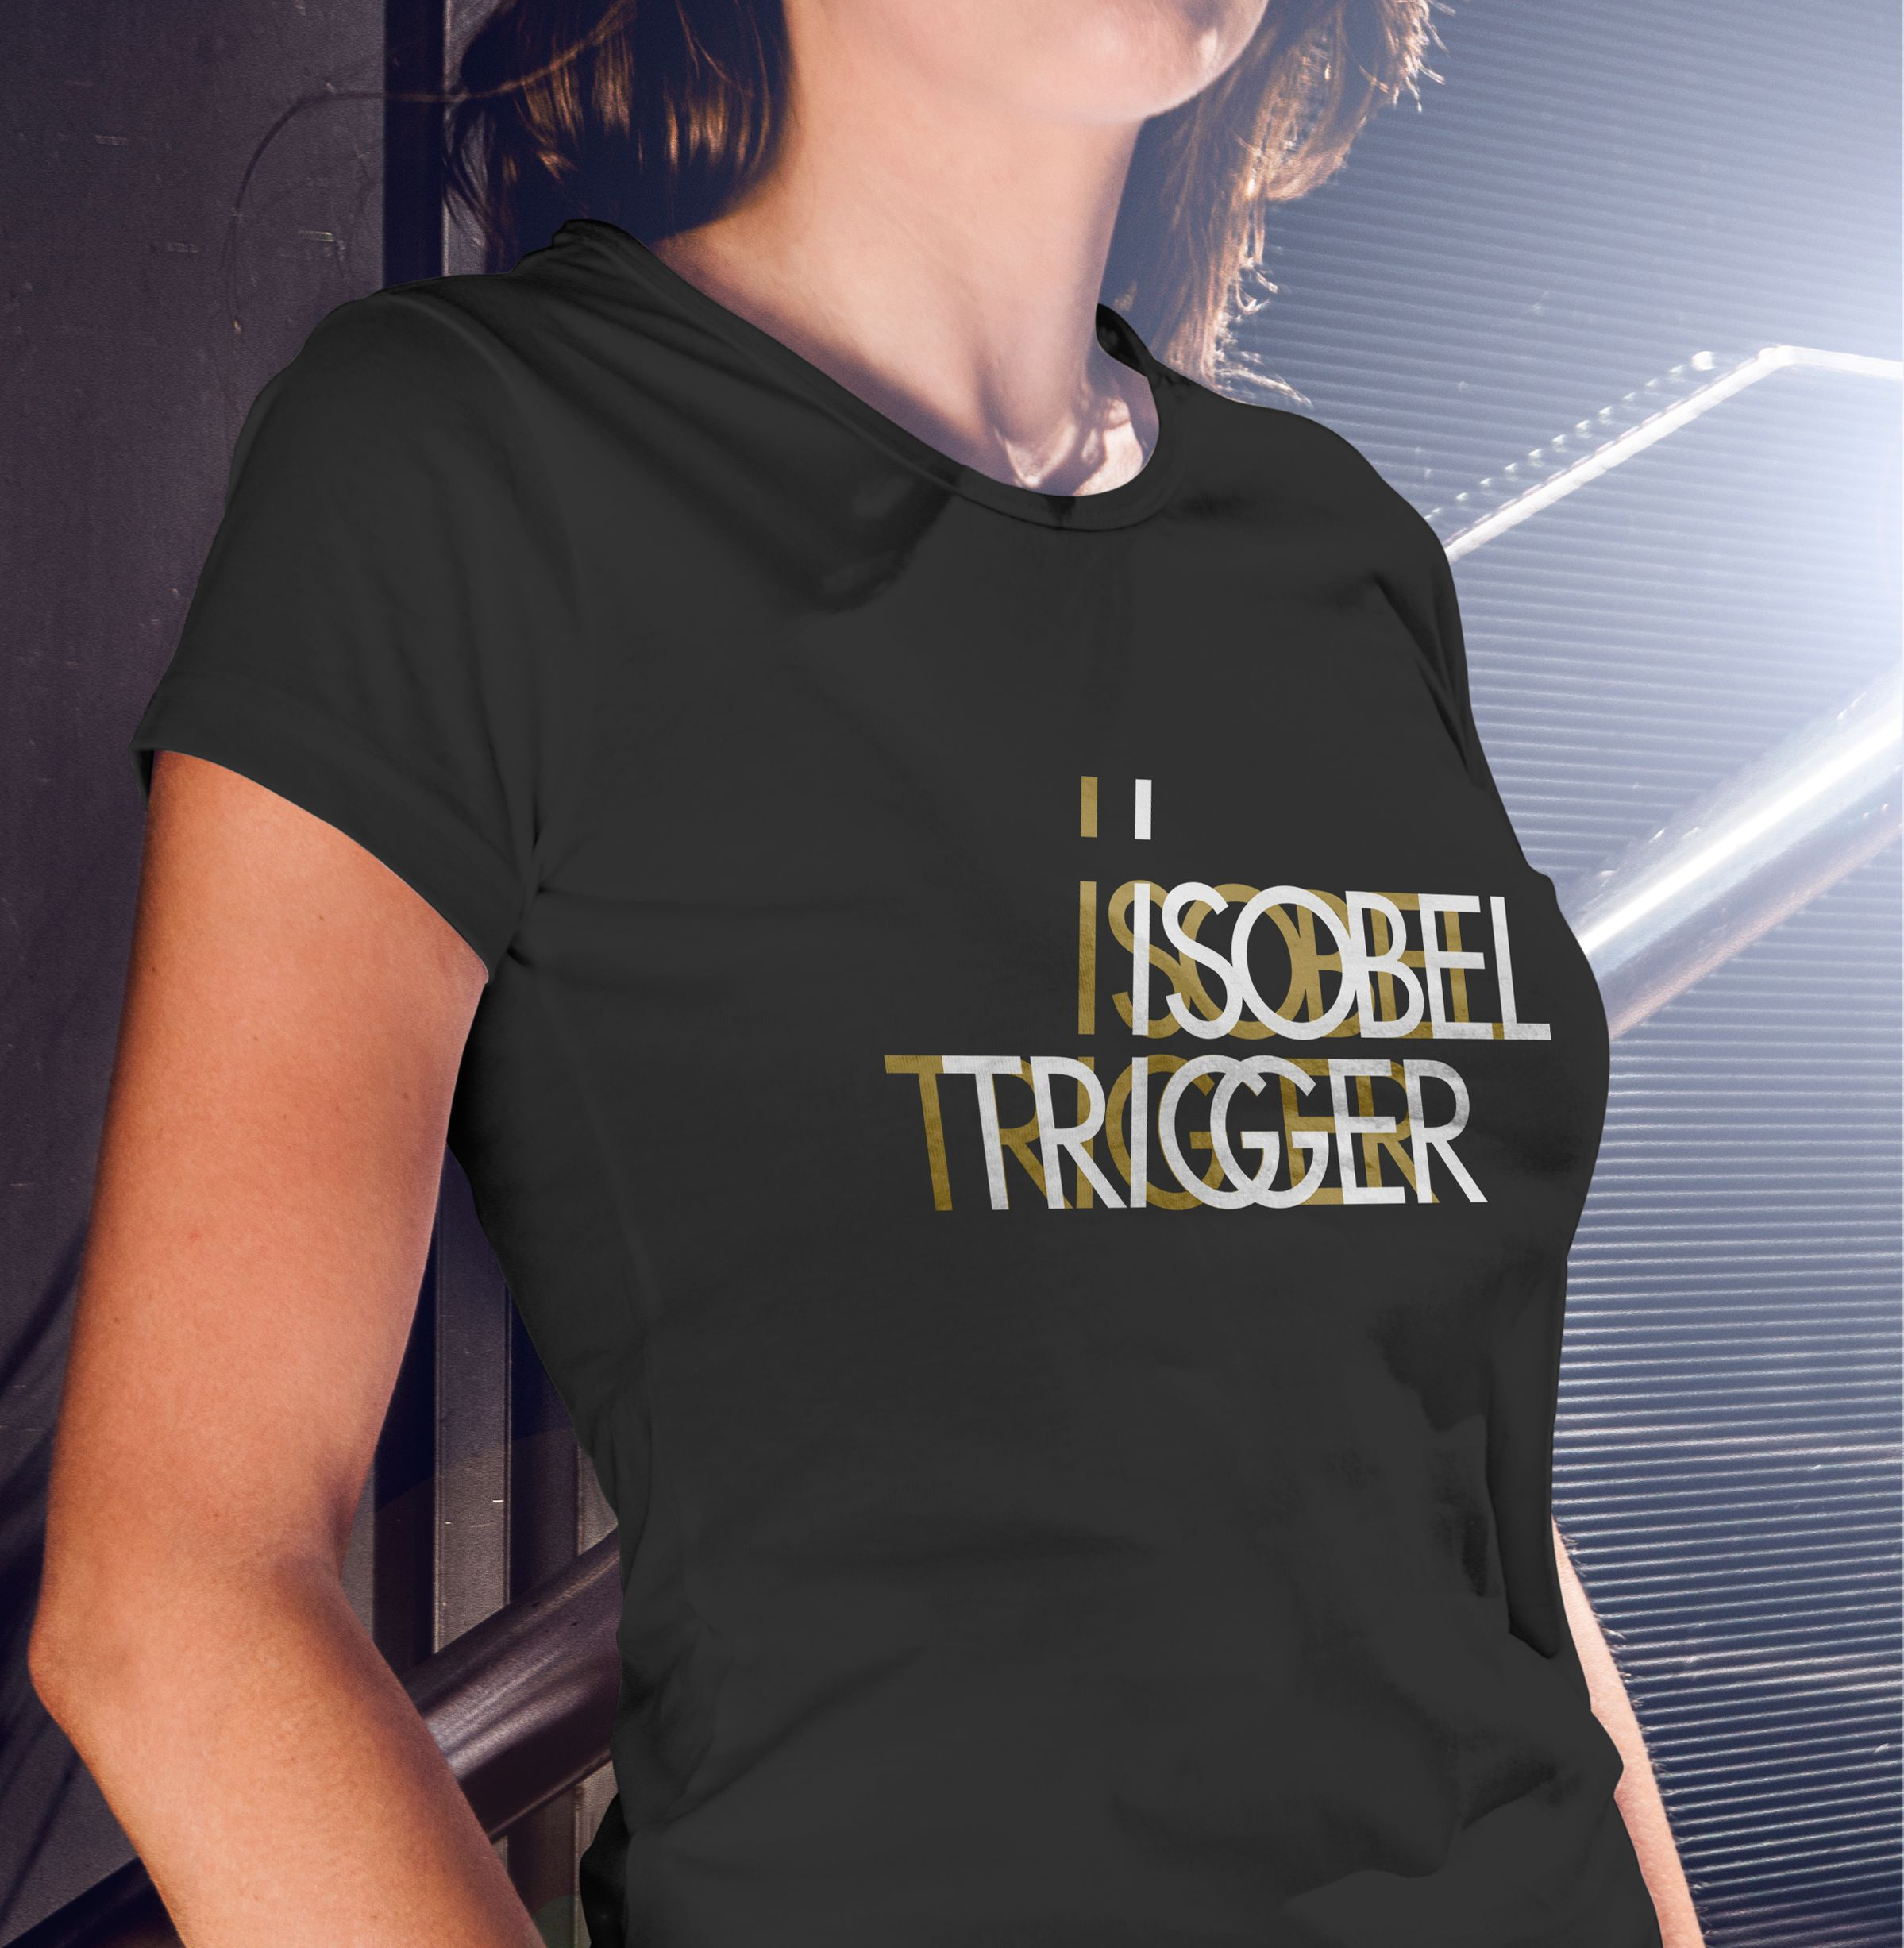 T-Shirt for Isobel Trigger, a Canadian Rock Band by Ottawa Graphic Designer idApostle